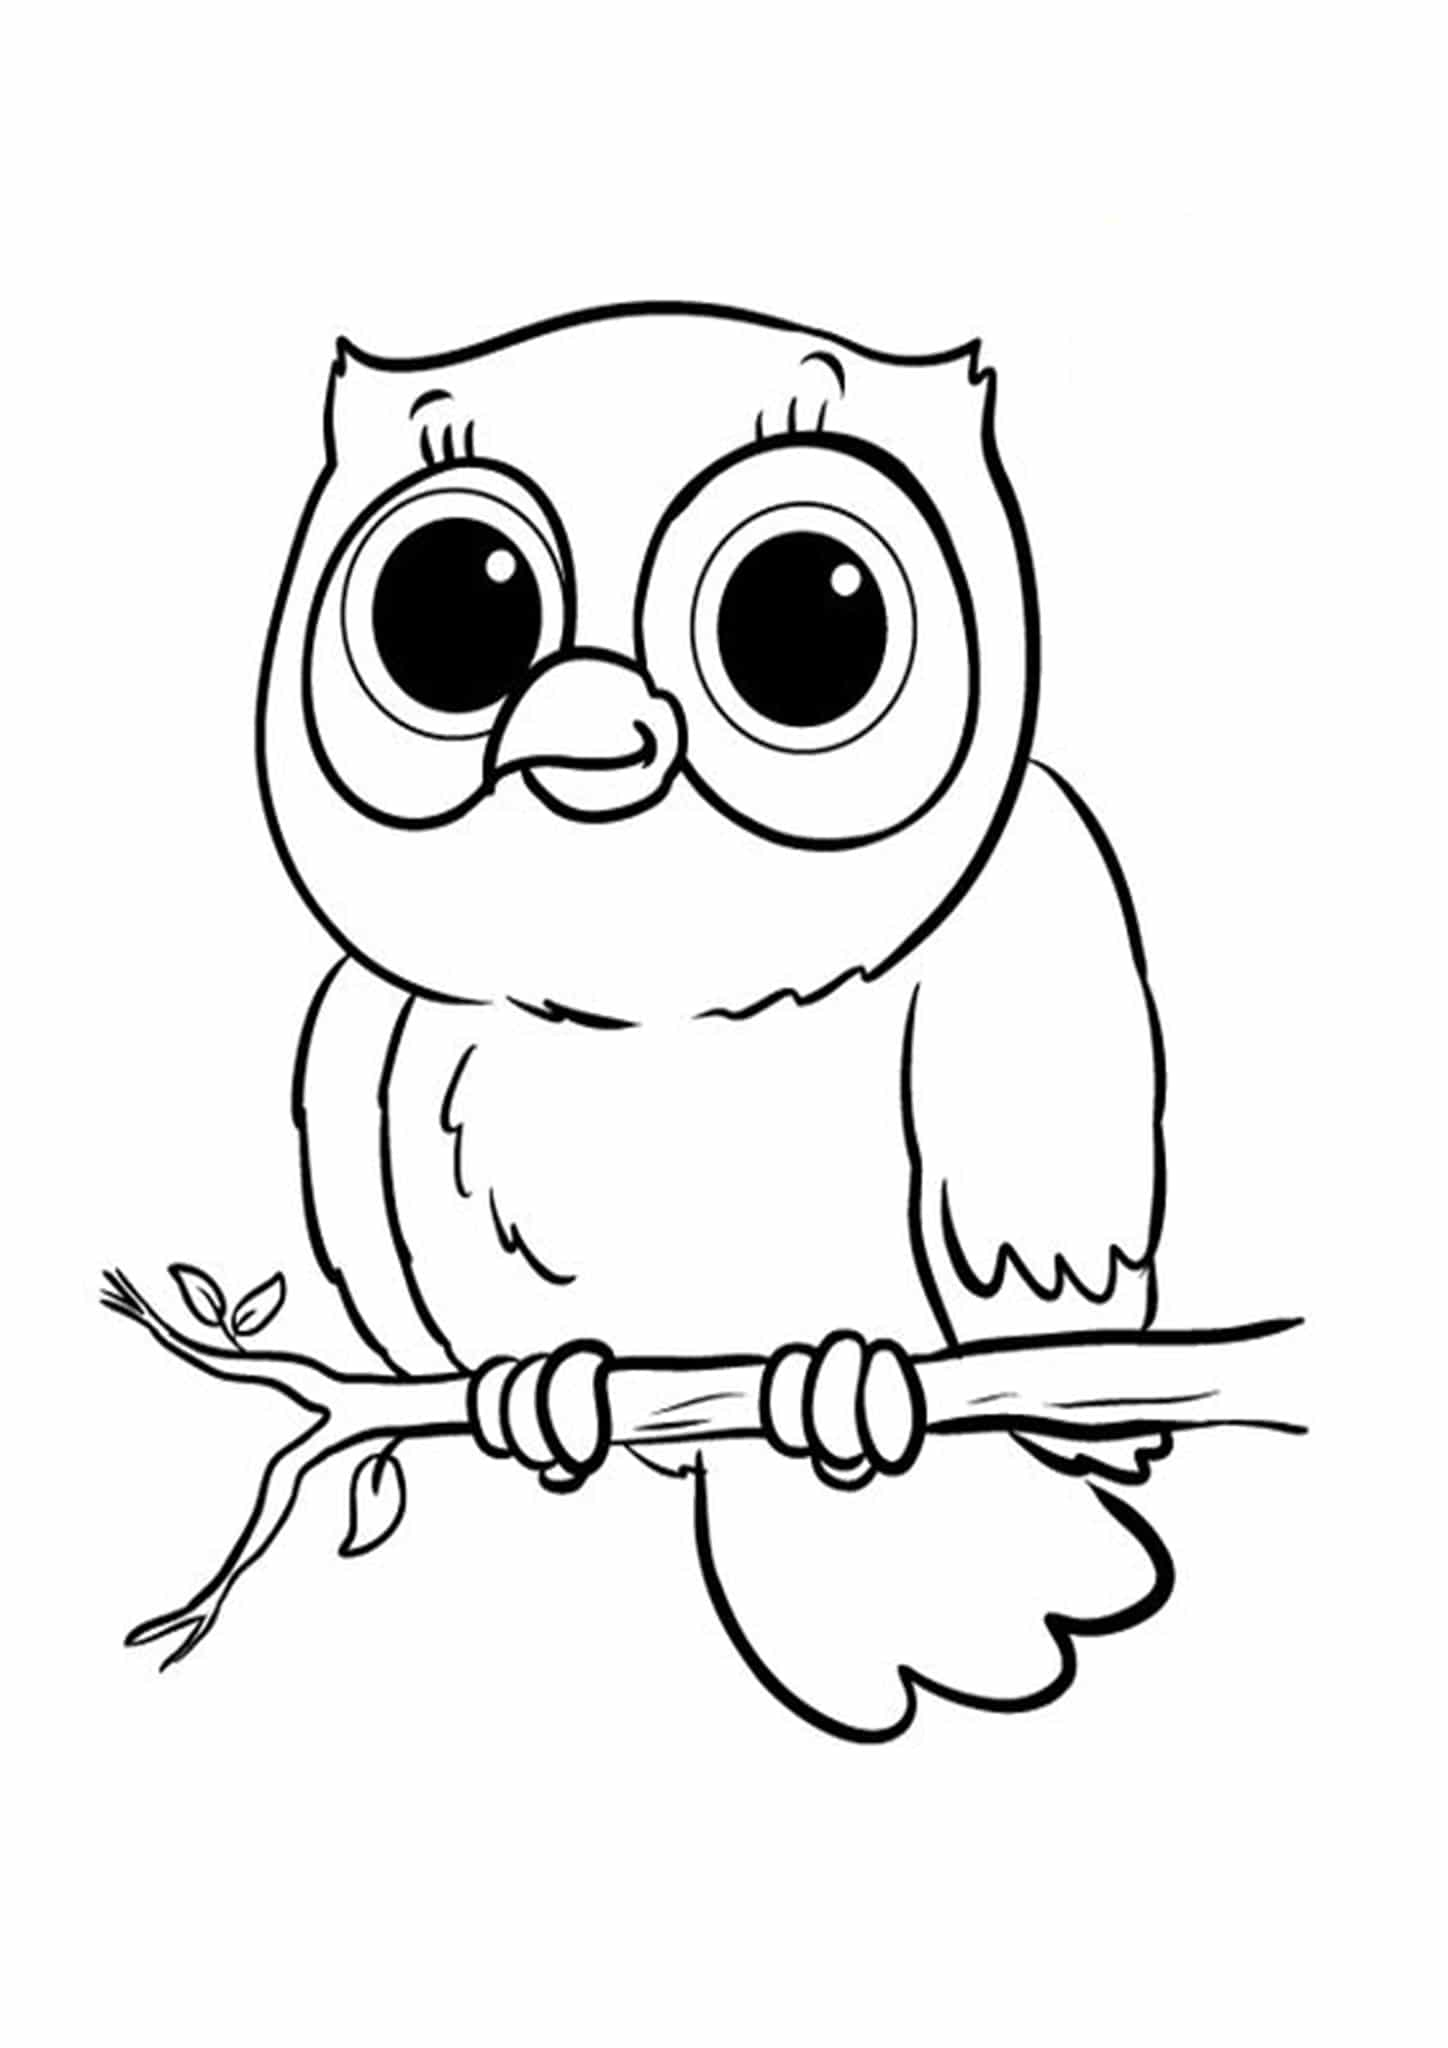 owl coloring free easy to print owl coloring pages tulamama owl coloring